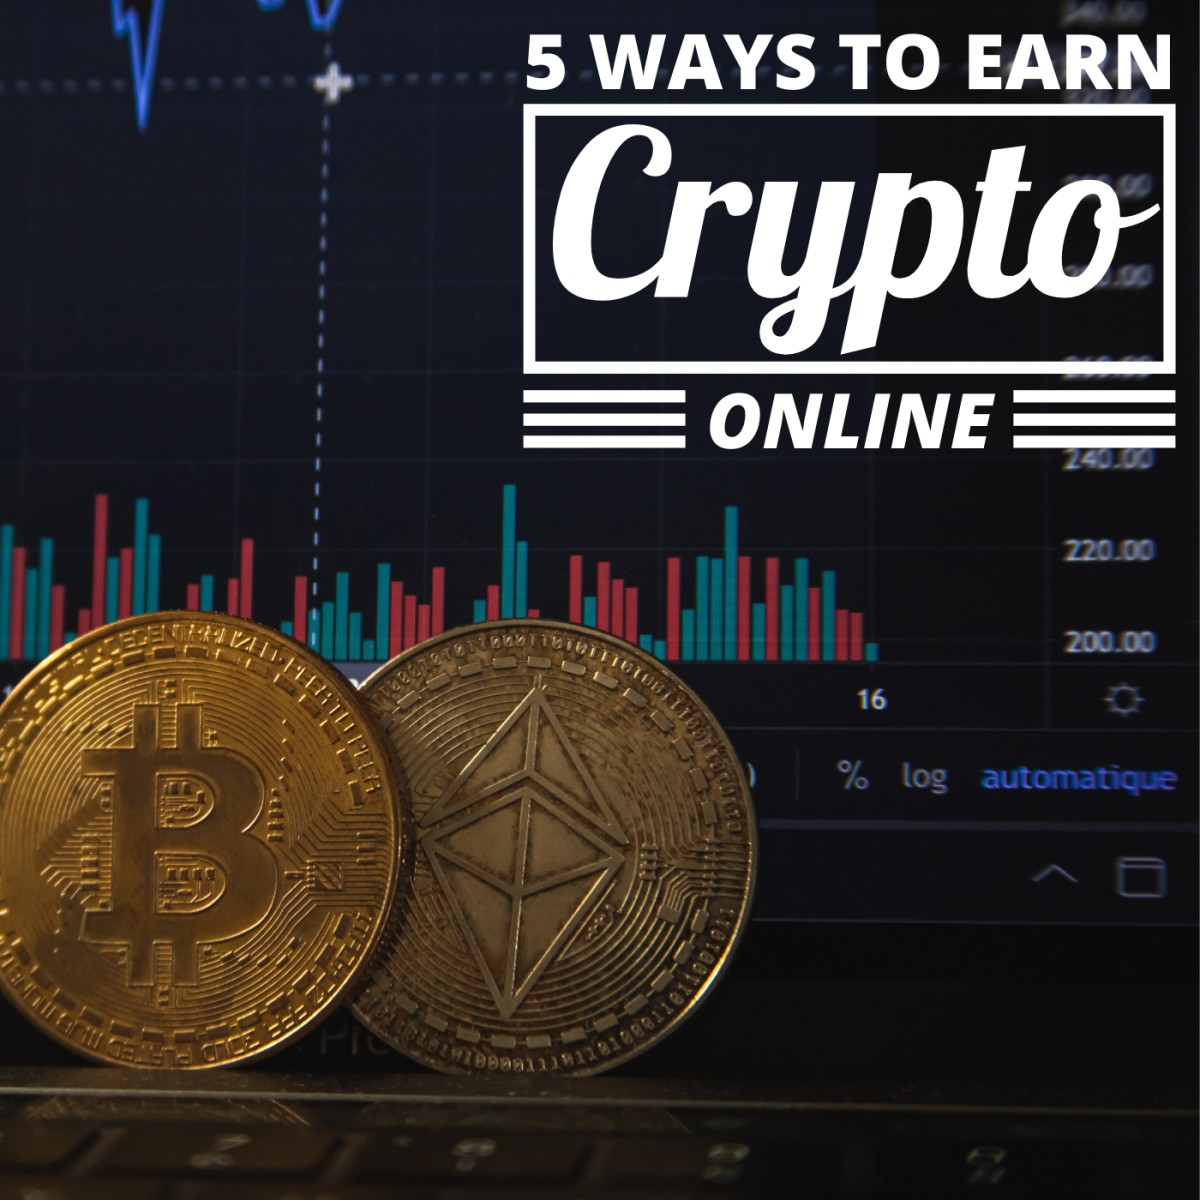 Want to learn about crypto without risking your own money? Here are several ways to do so.